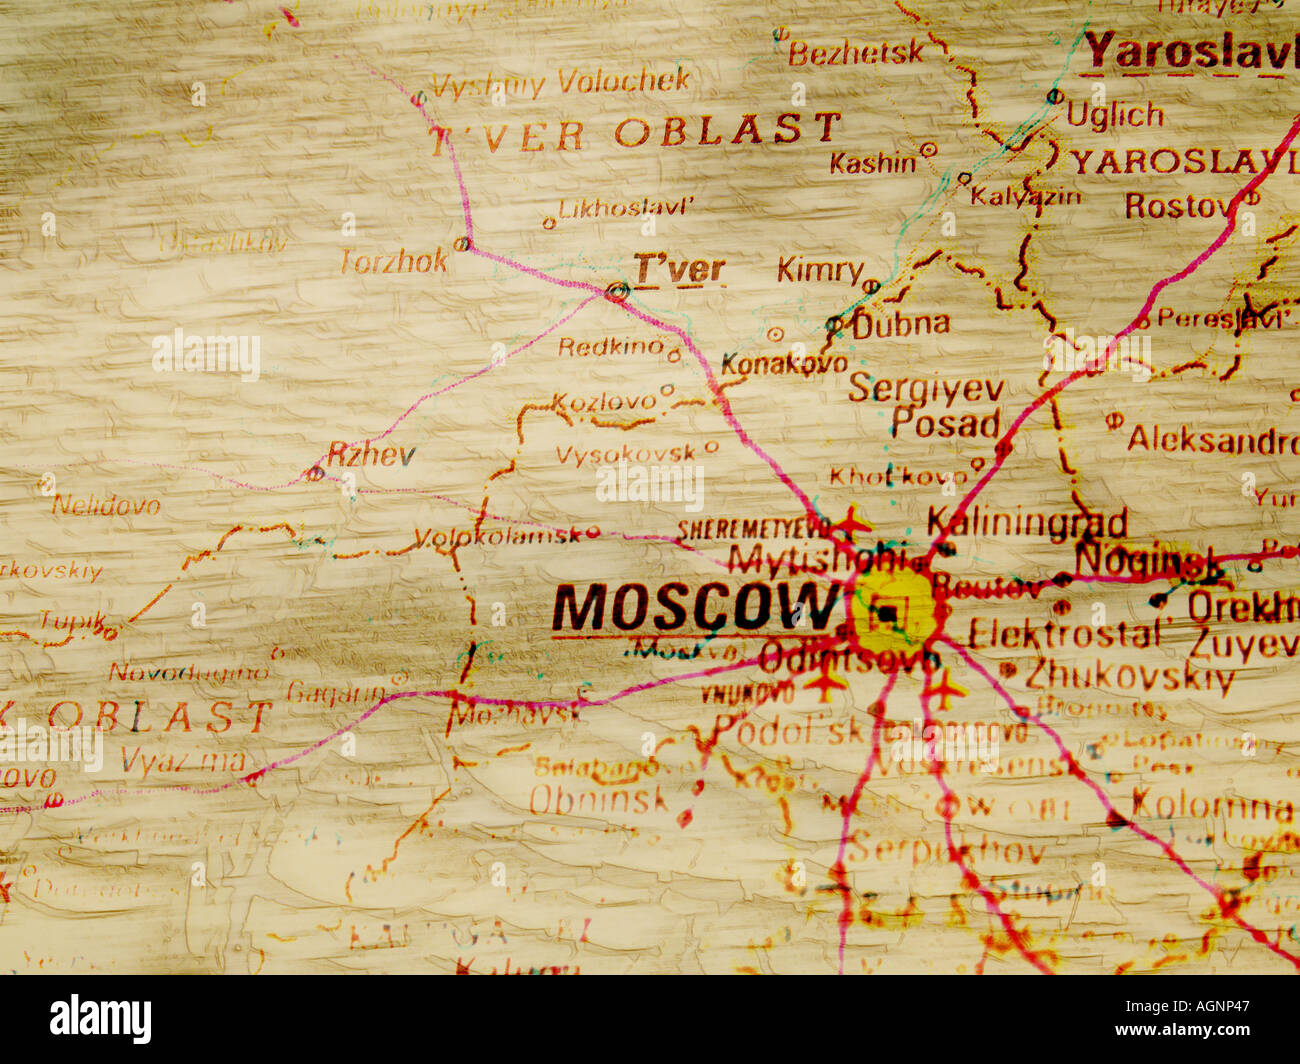 Antique Looking Map Of Moscow Stock Photo Alamy - Antique looking maps